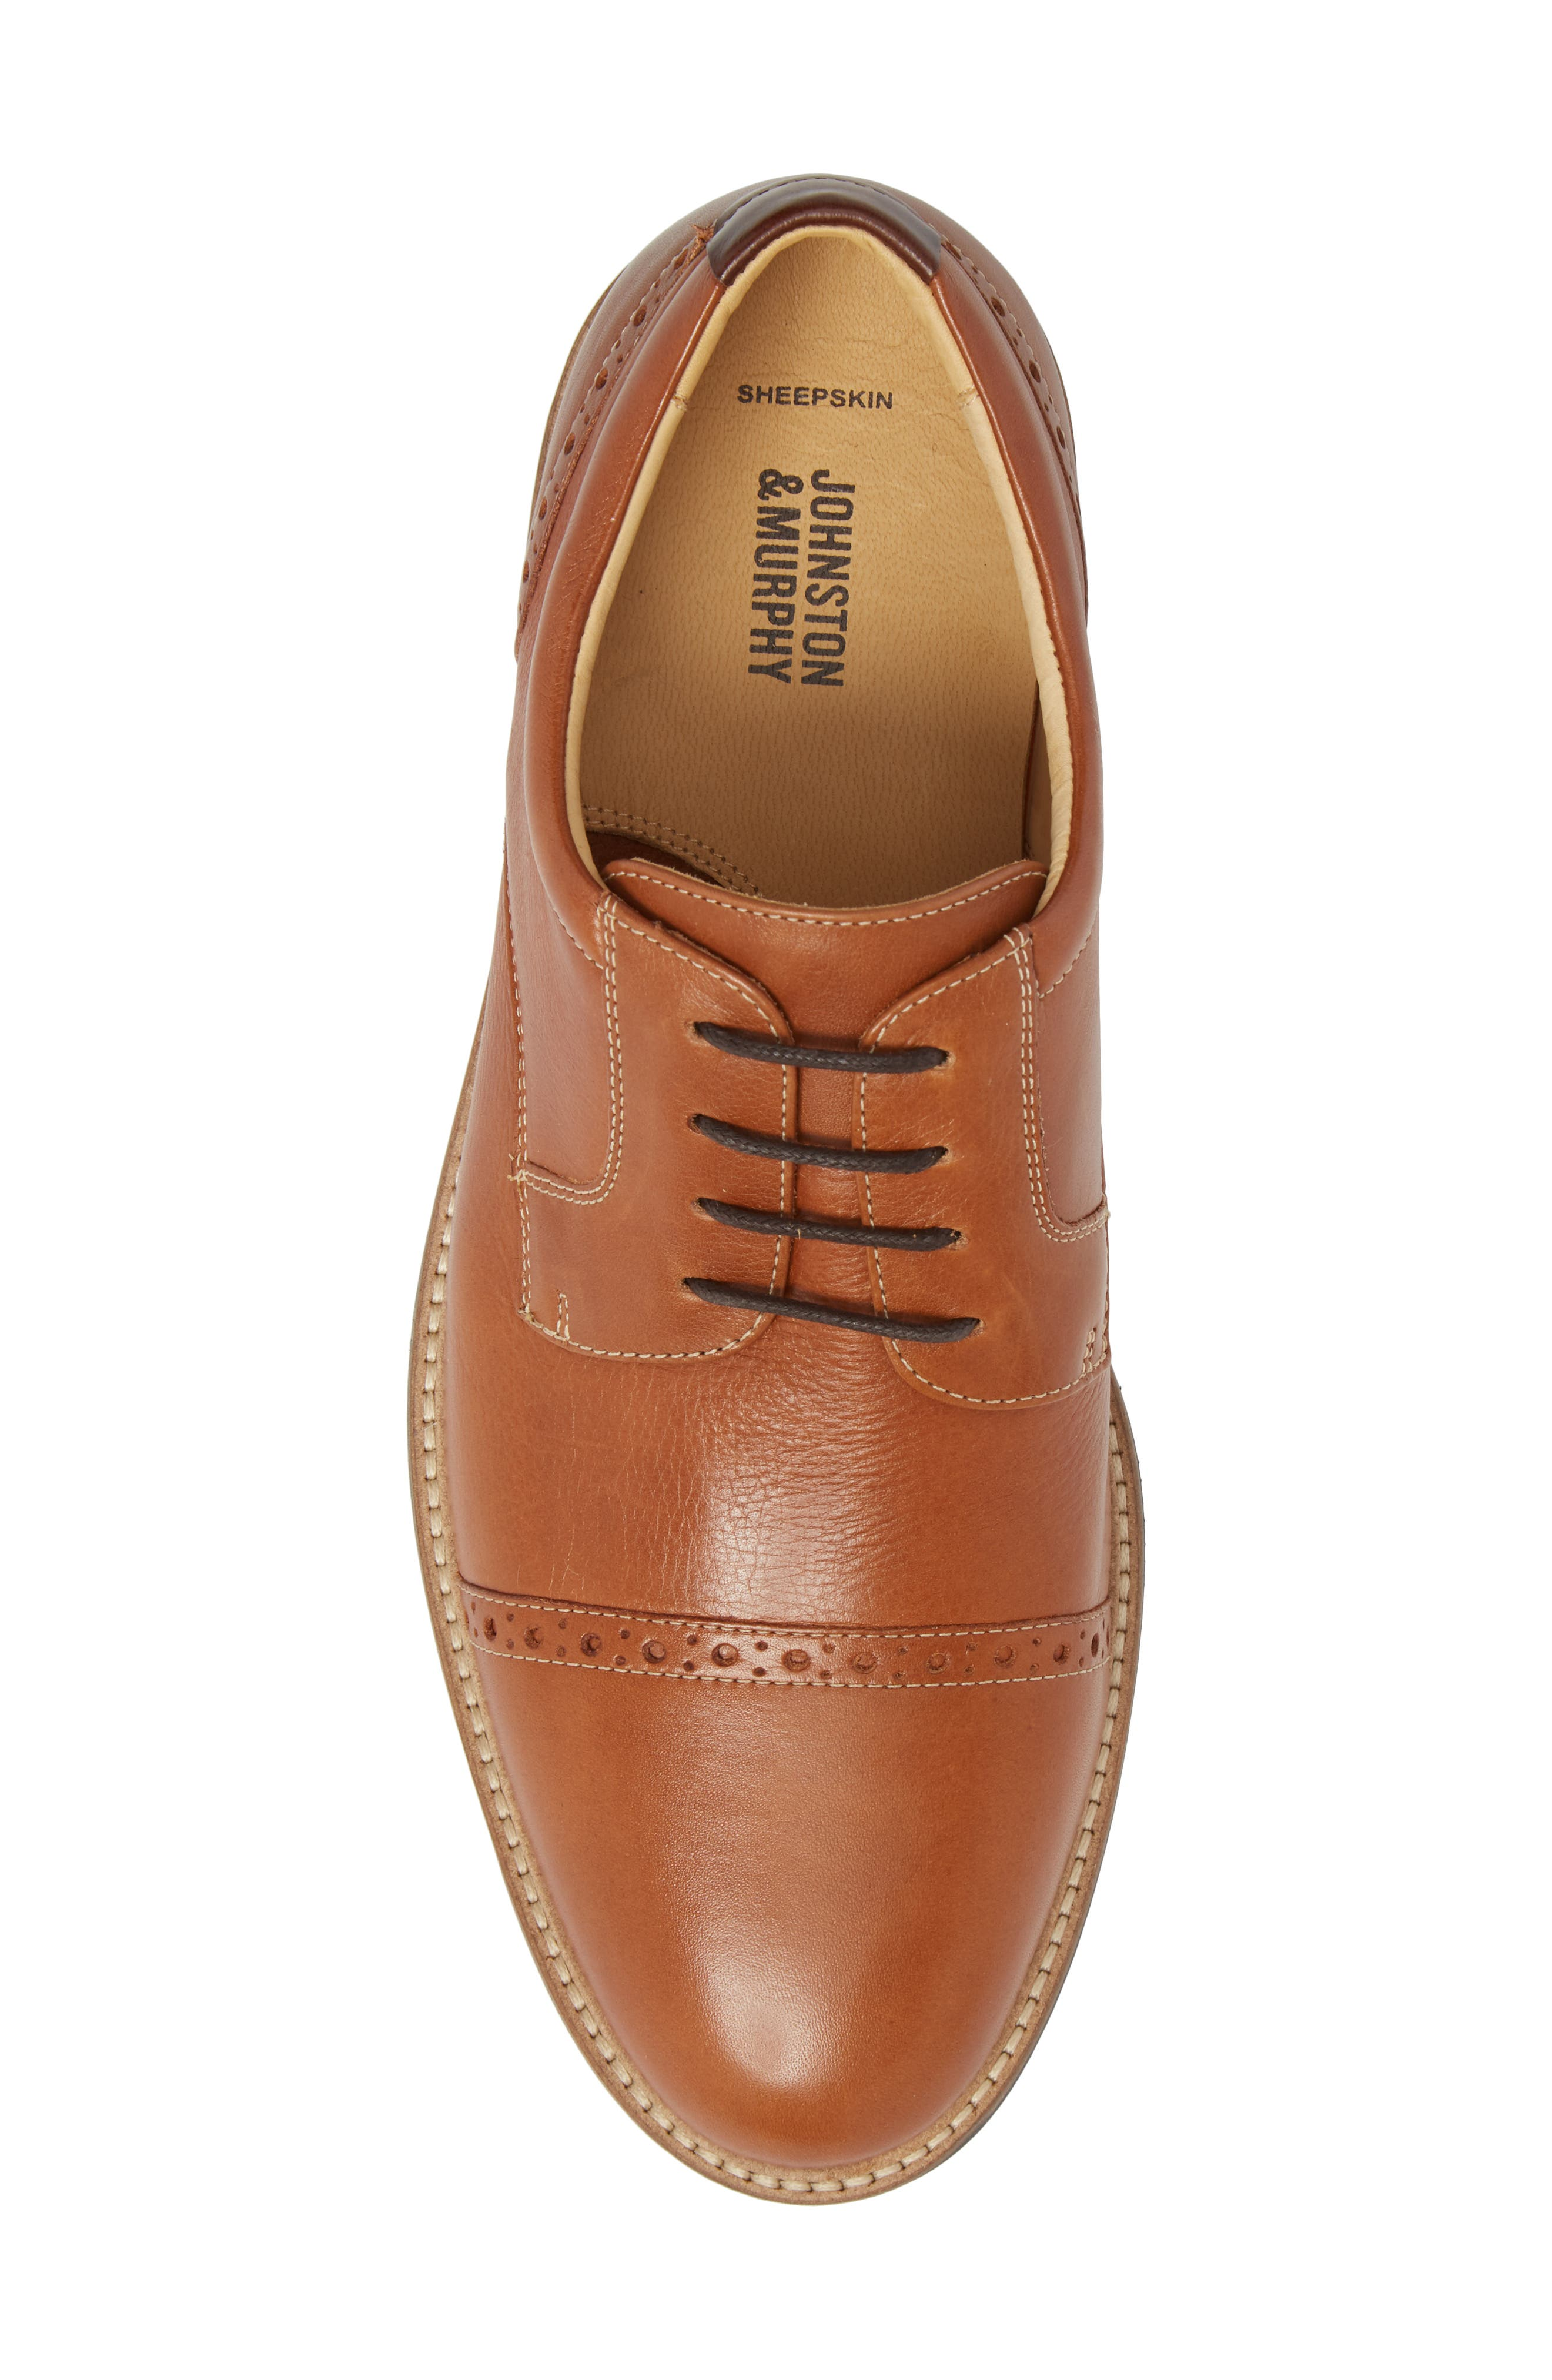 JOHNSTON & MURPHY,                             Barlow Cap Toe Derby,                             Alternate thumbnail 5, color,                             TAN LEATHER